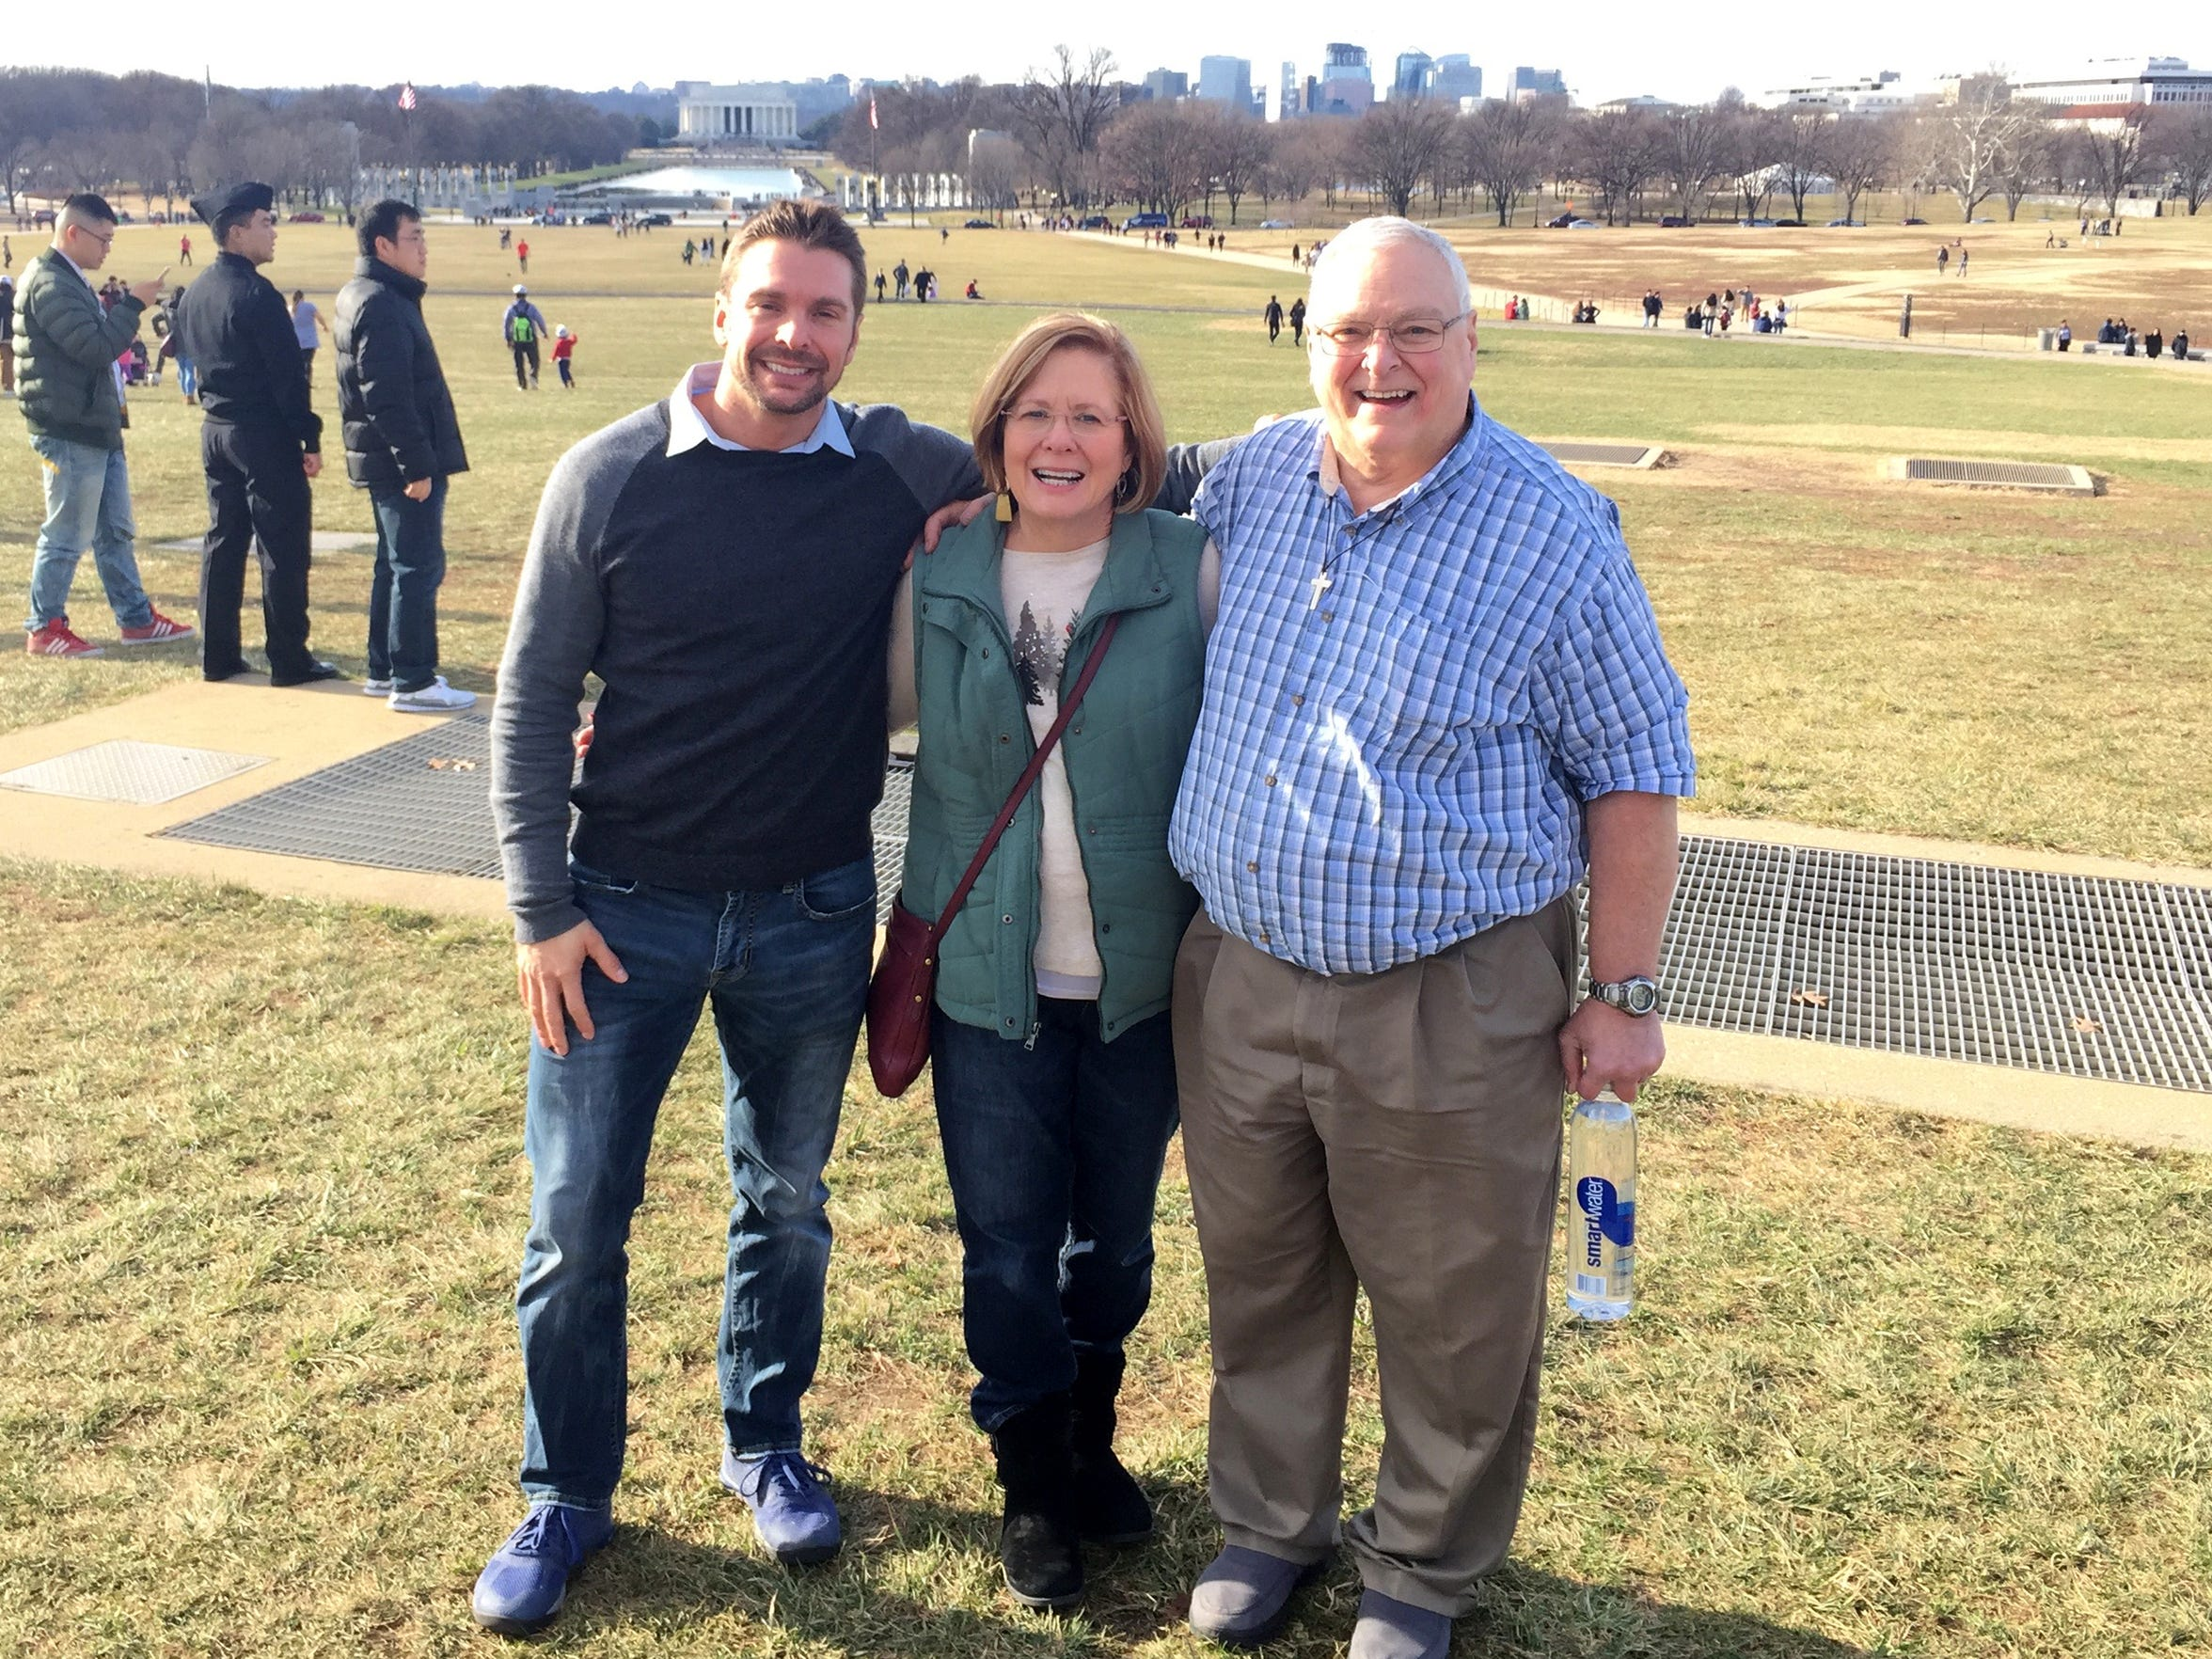 Corey, left, Patti and John Campbell. Corey now lives in Hawaii, but Patti and John still live in Fishersville.